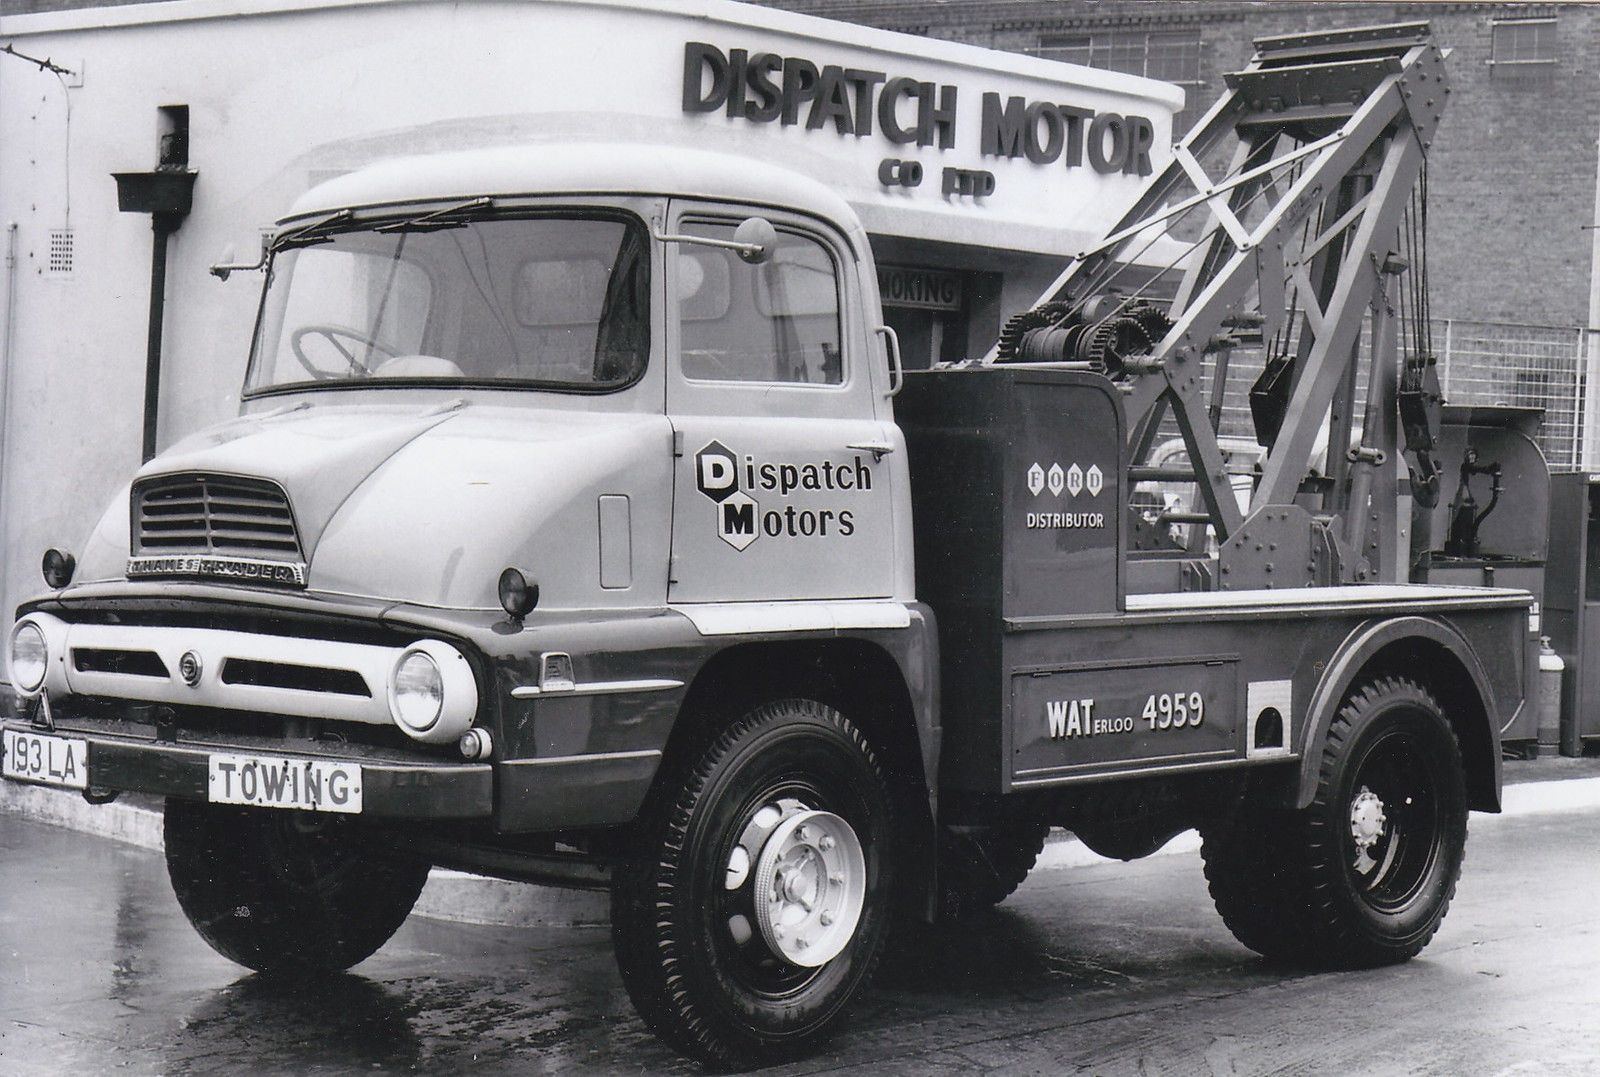 193 LA | Tow truck, Ford and Commercial vehicle